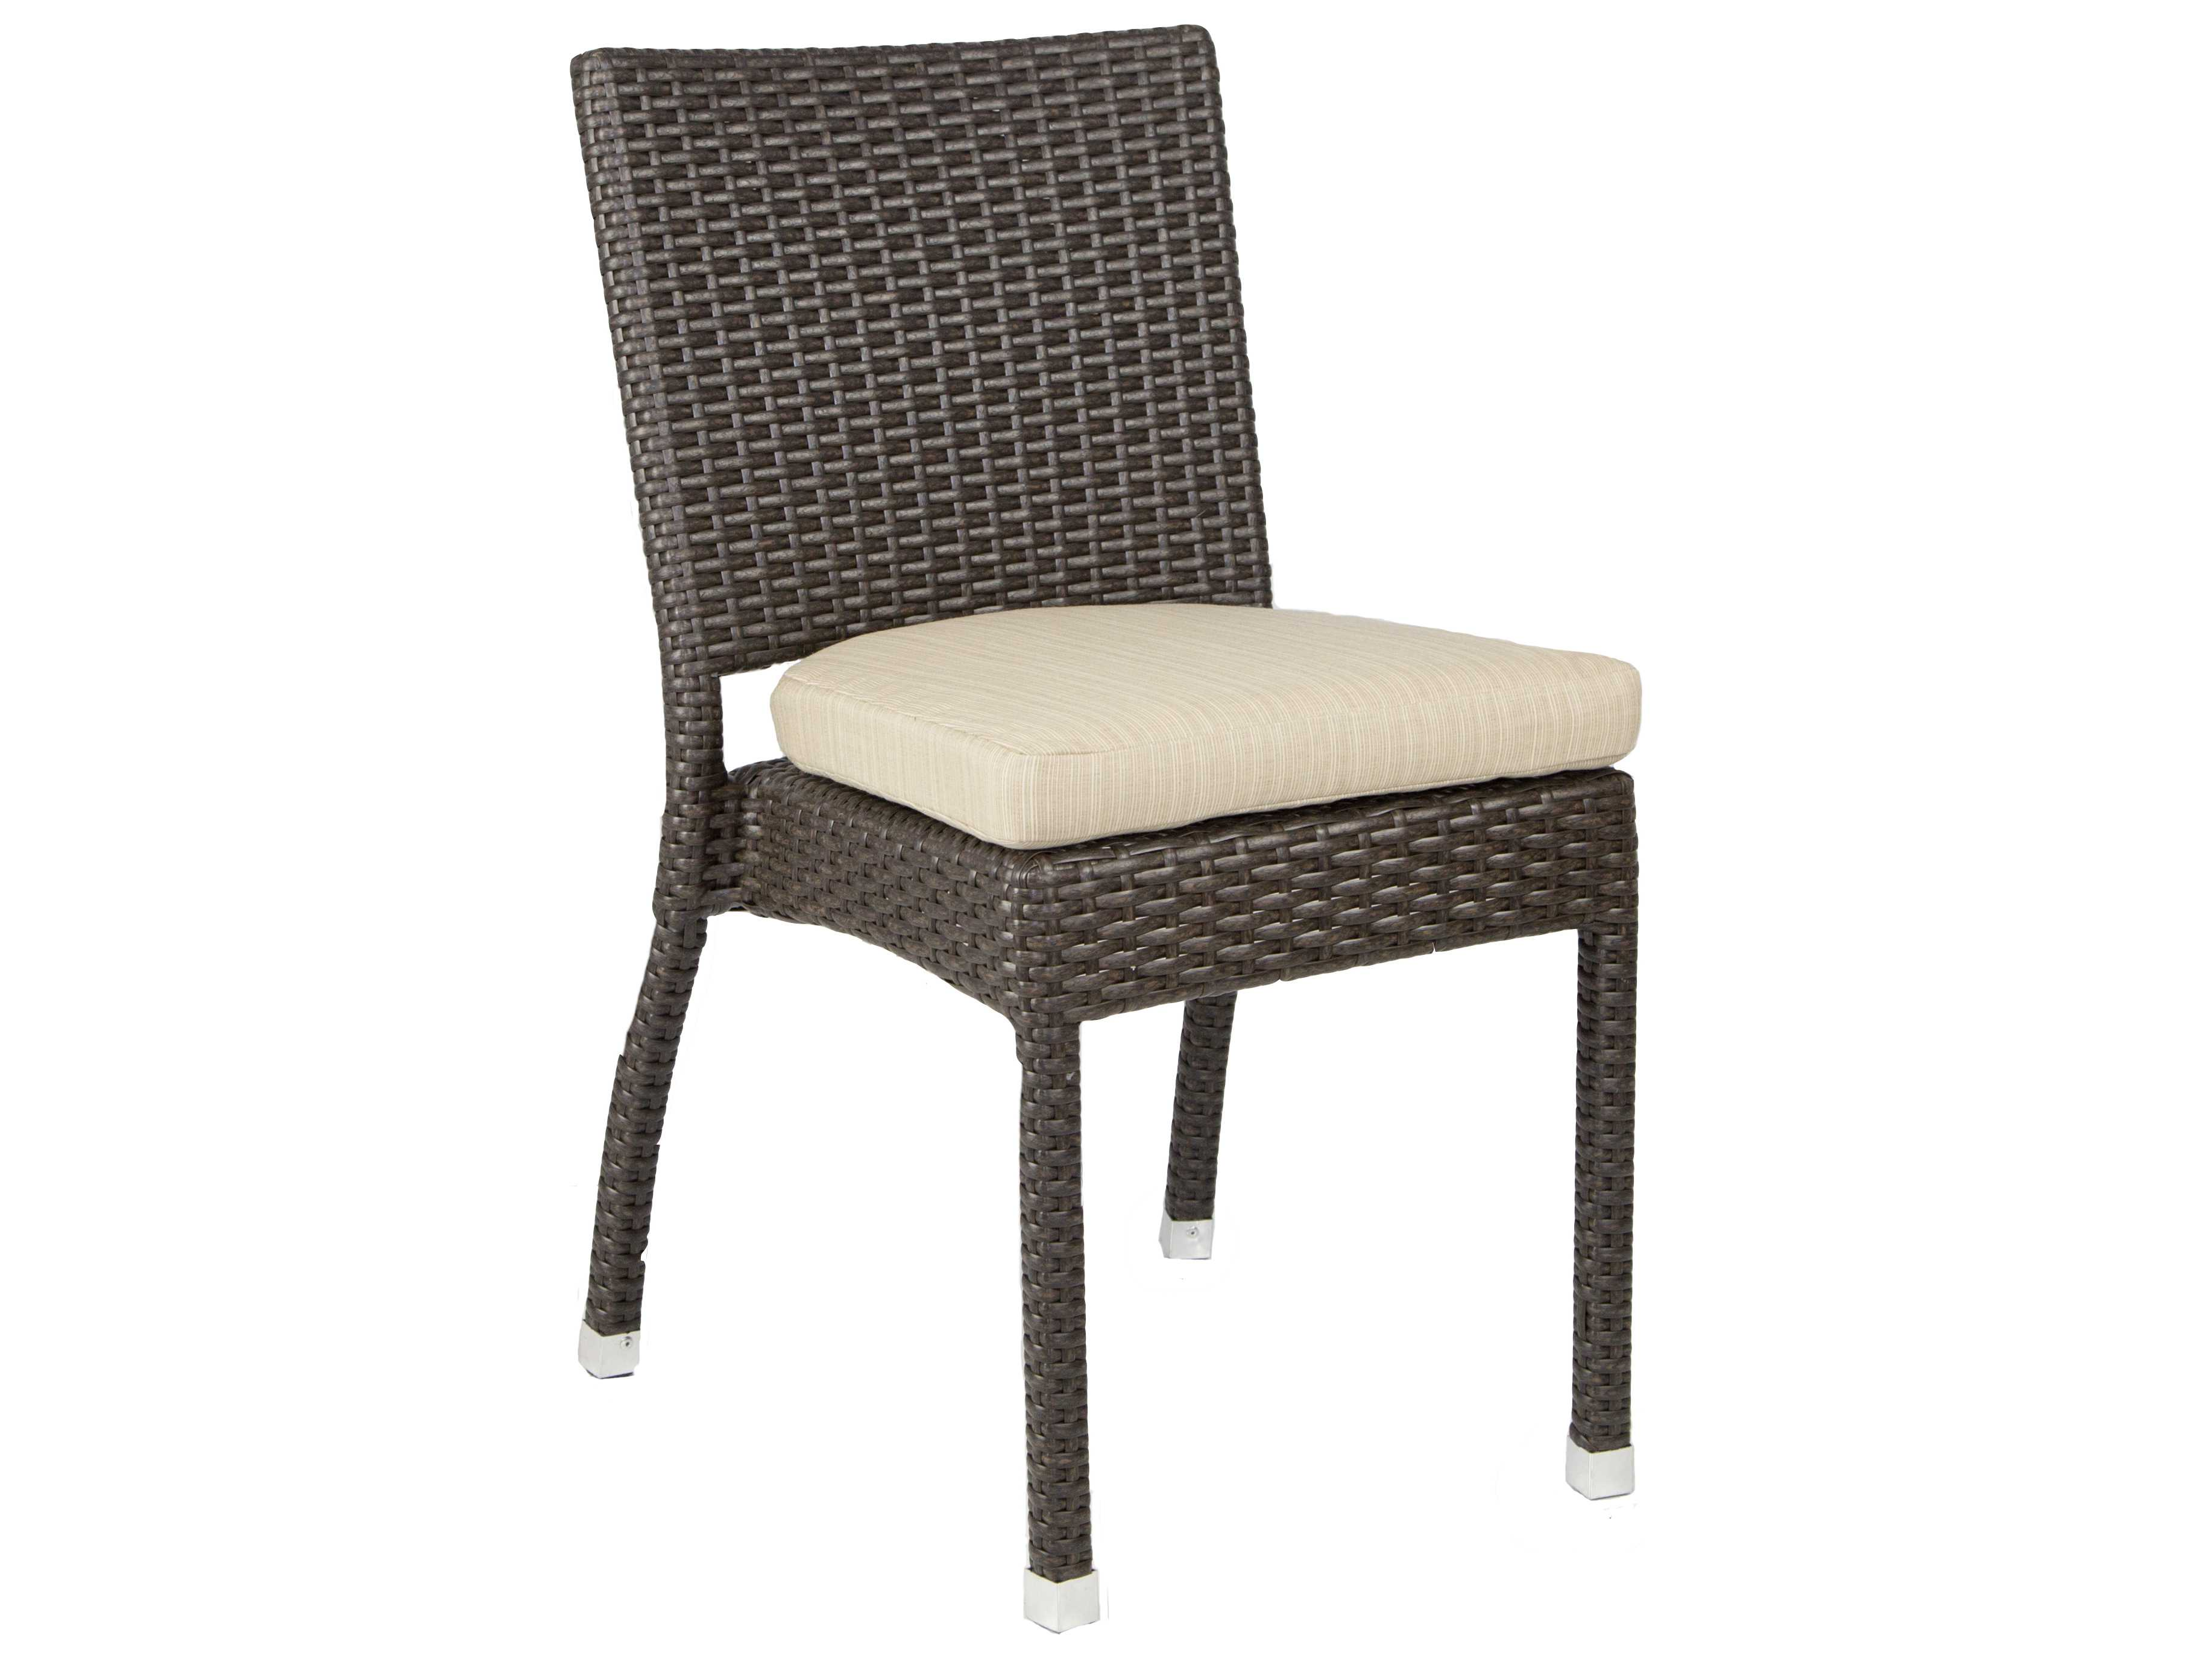 Wicker Side Chair Patio Heaven Venice Zuma Wicker Side Chair Paphzsc